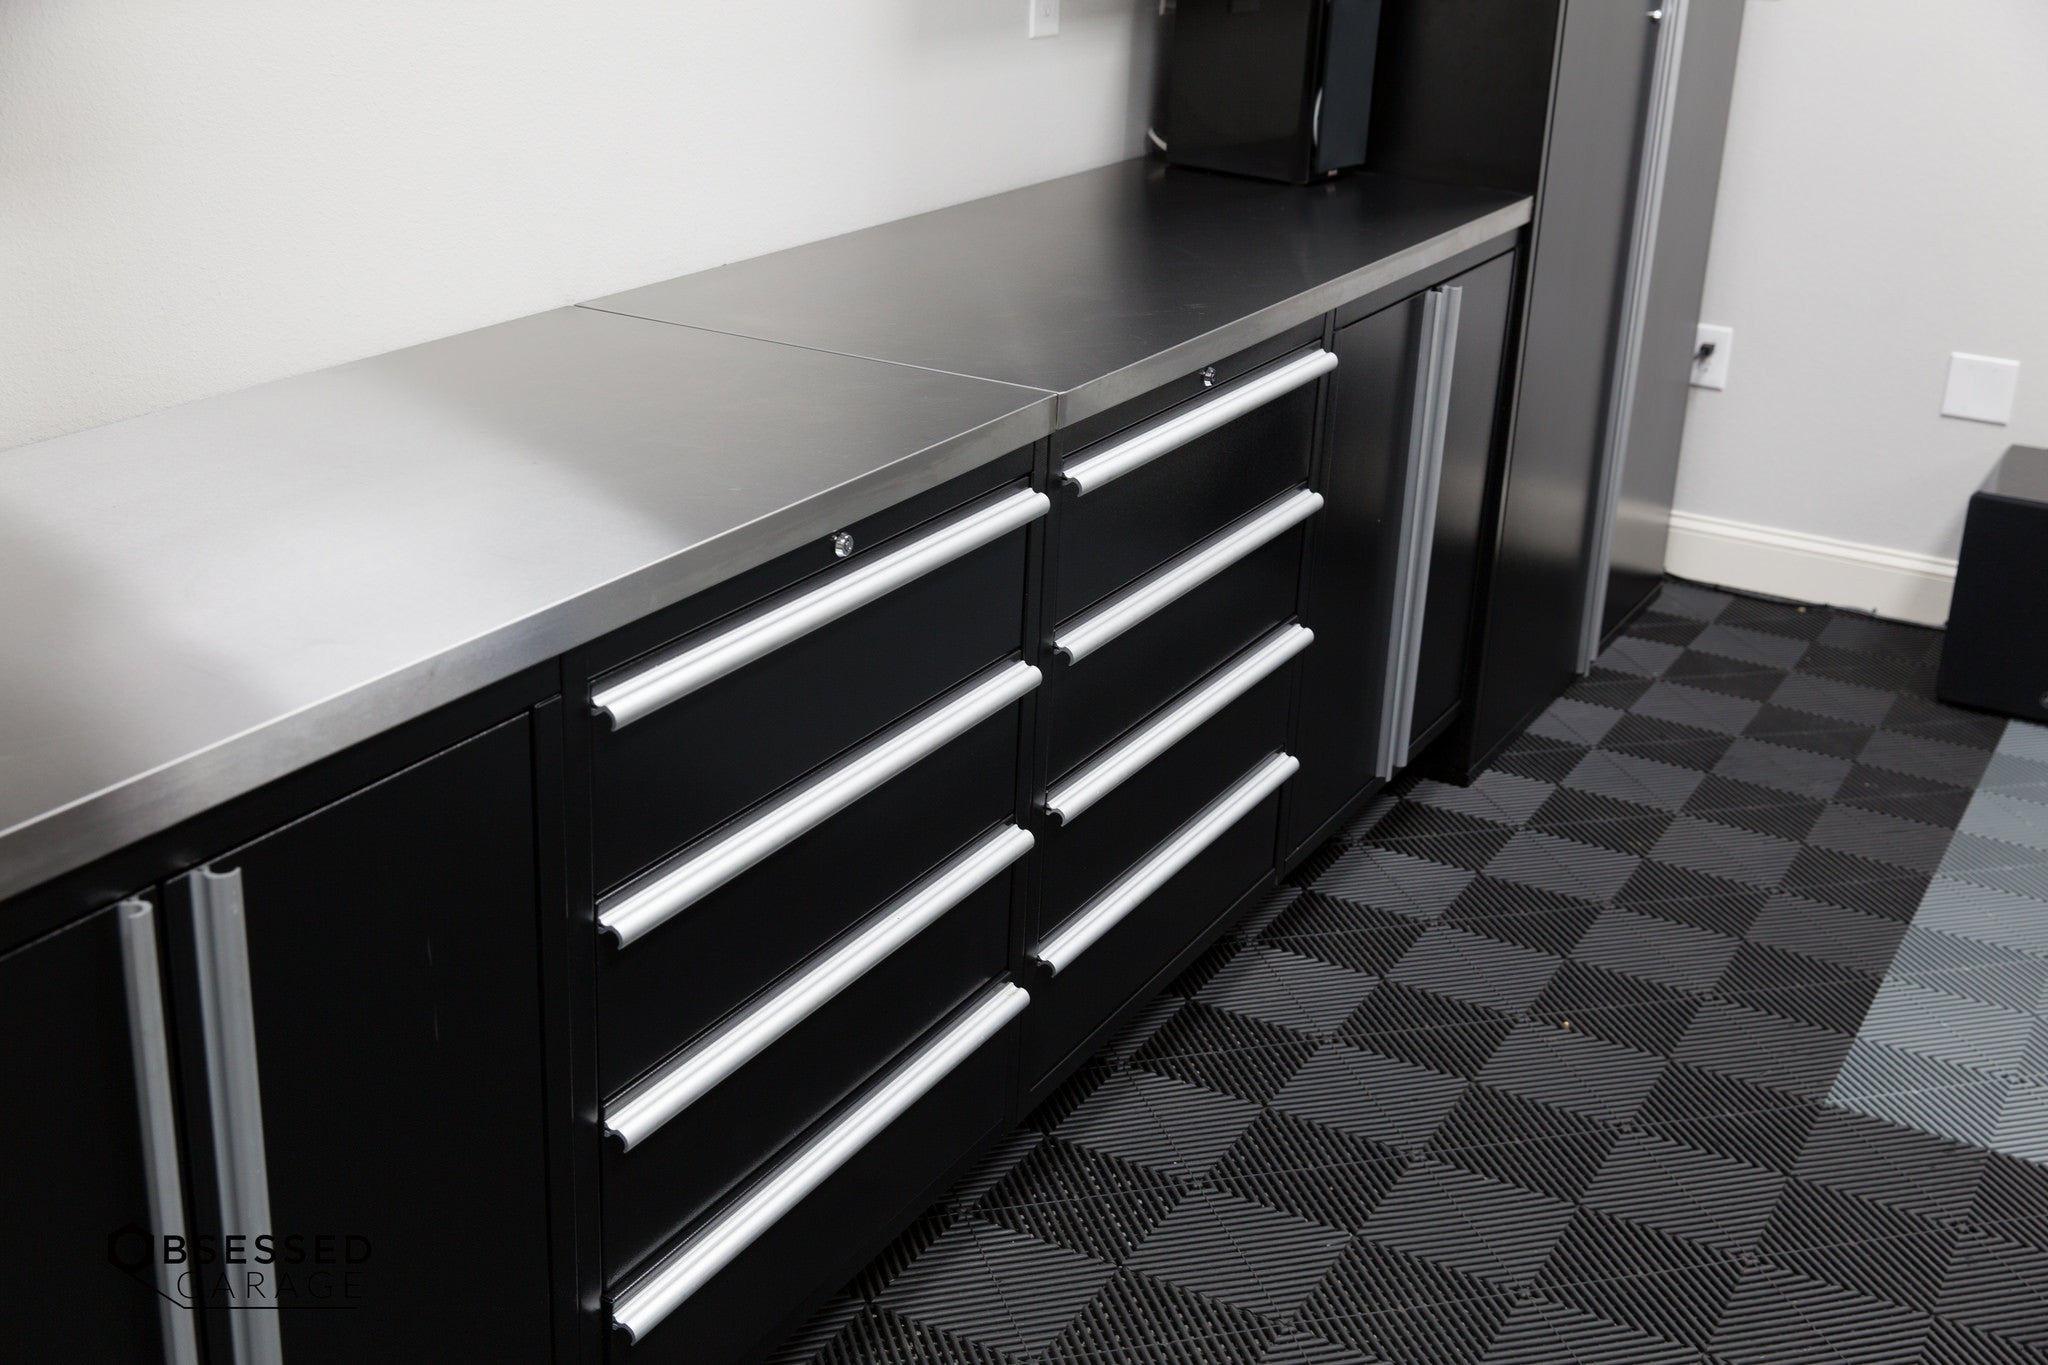 guy cabinets lista locker tool angfms cabinet room test the